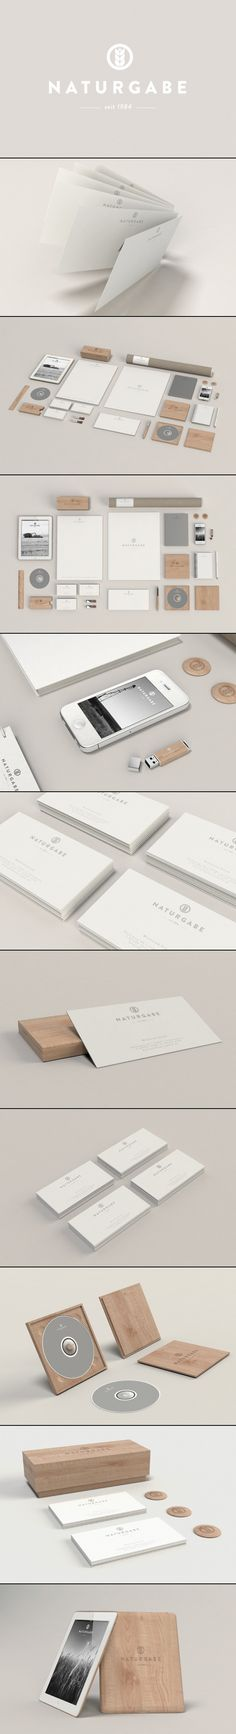 Naturgabe #identity #packaging #branding PD (color pallette)